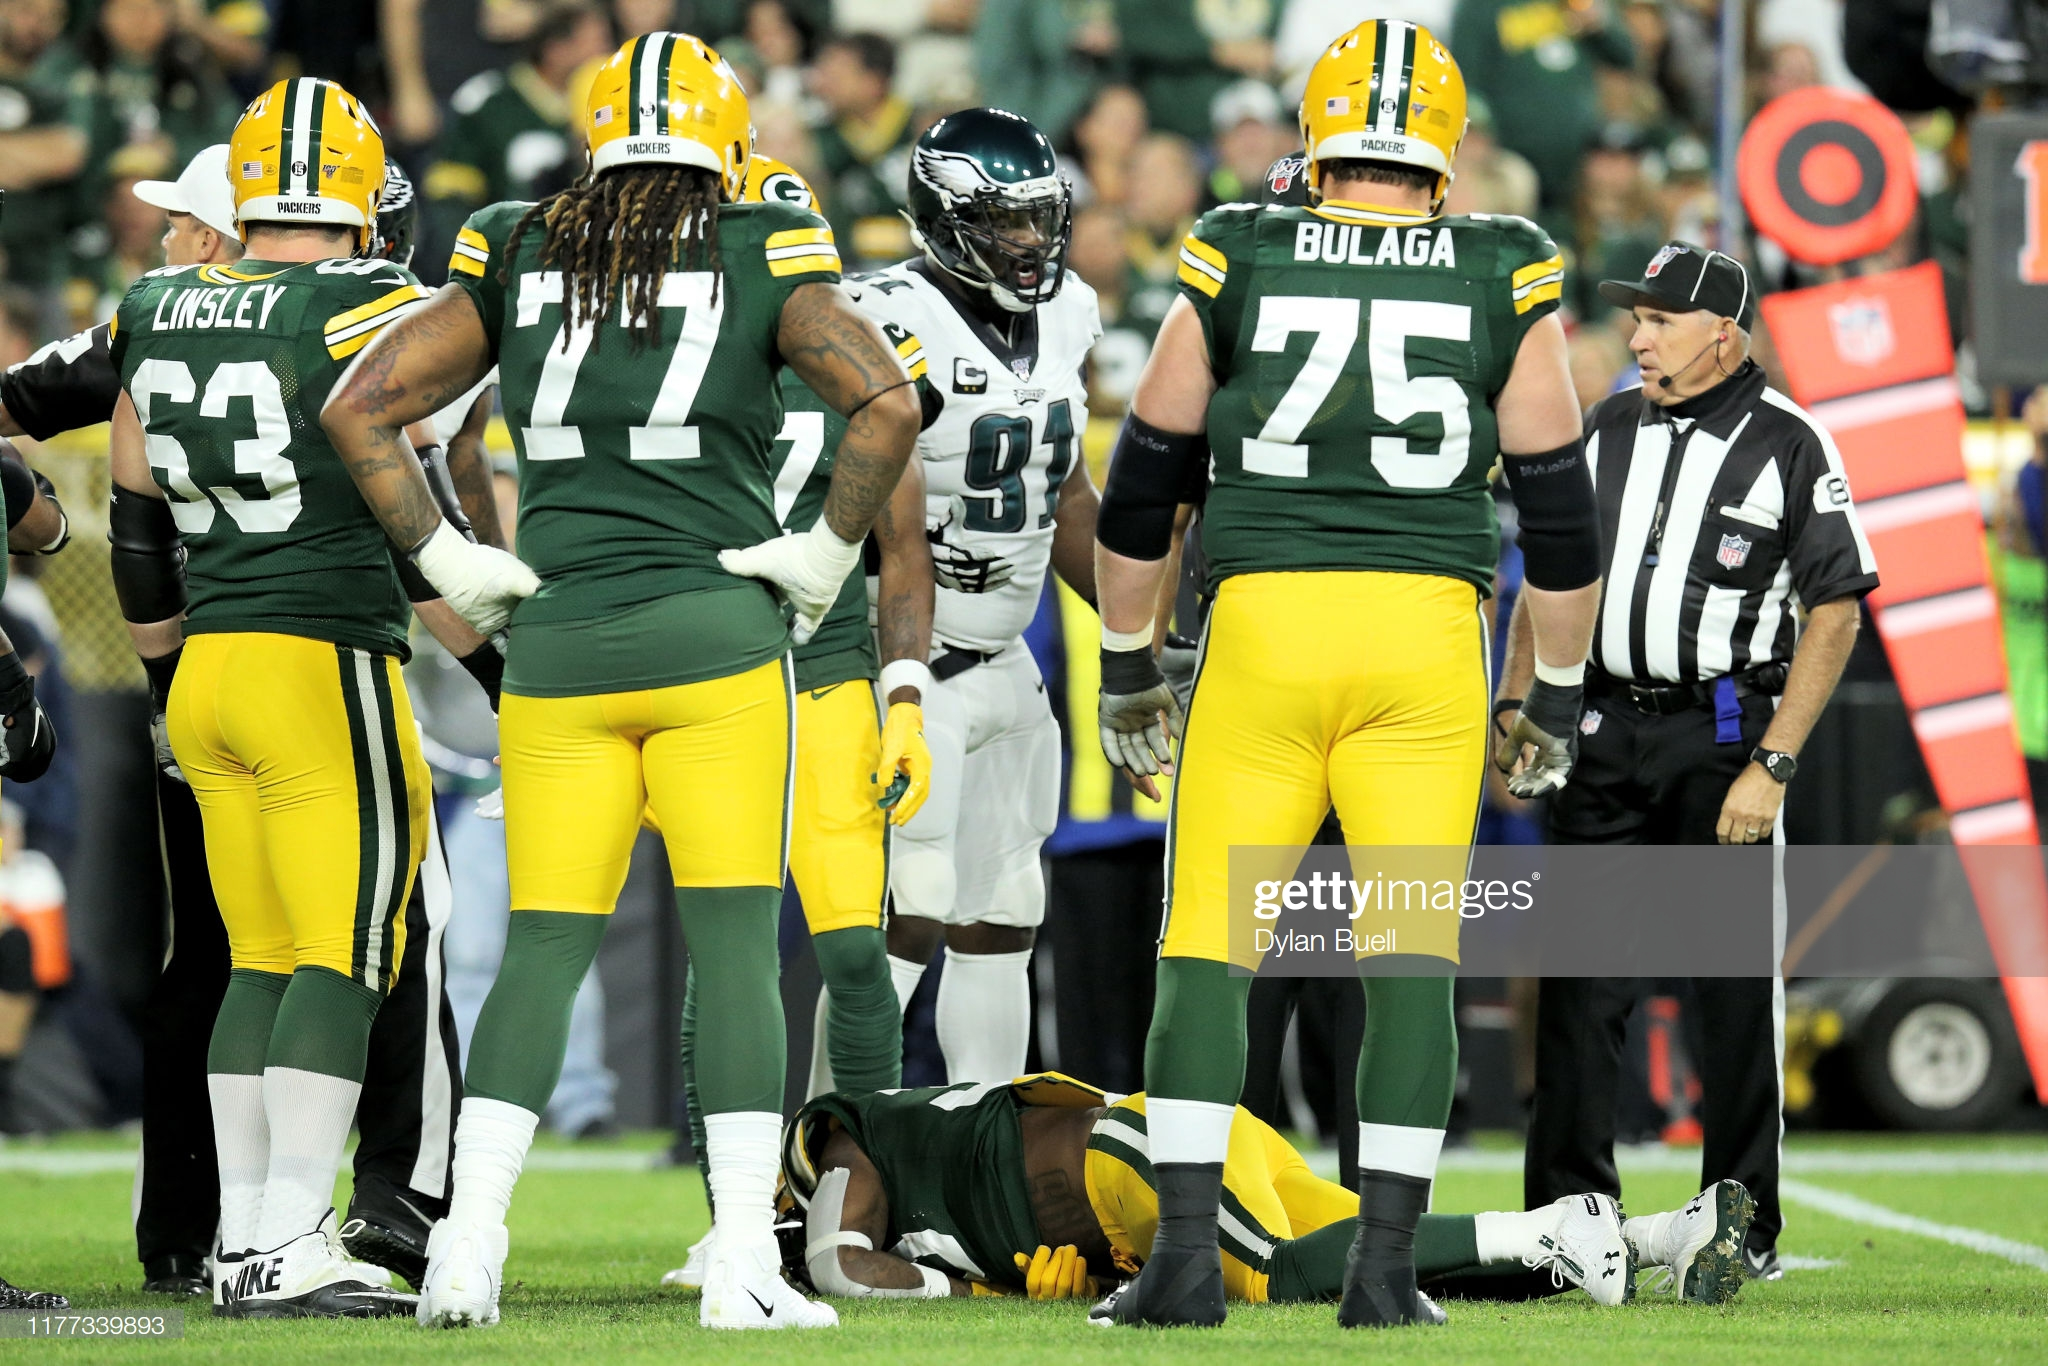 Green Bay Packers running back Jamaal Williams lays on the field after being injured from a hit against the Philadelphia Eagles